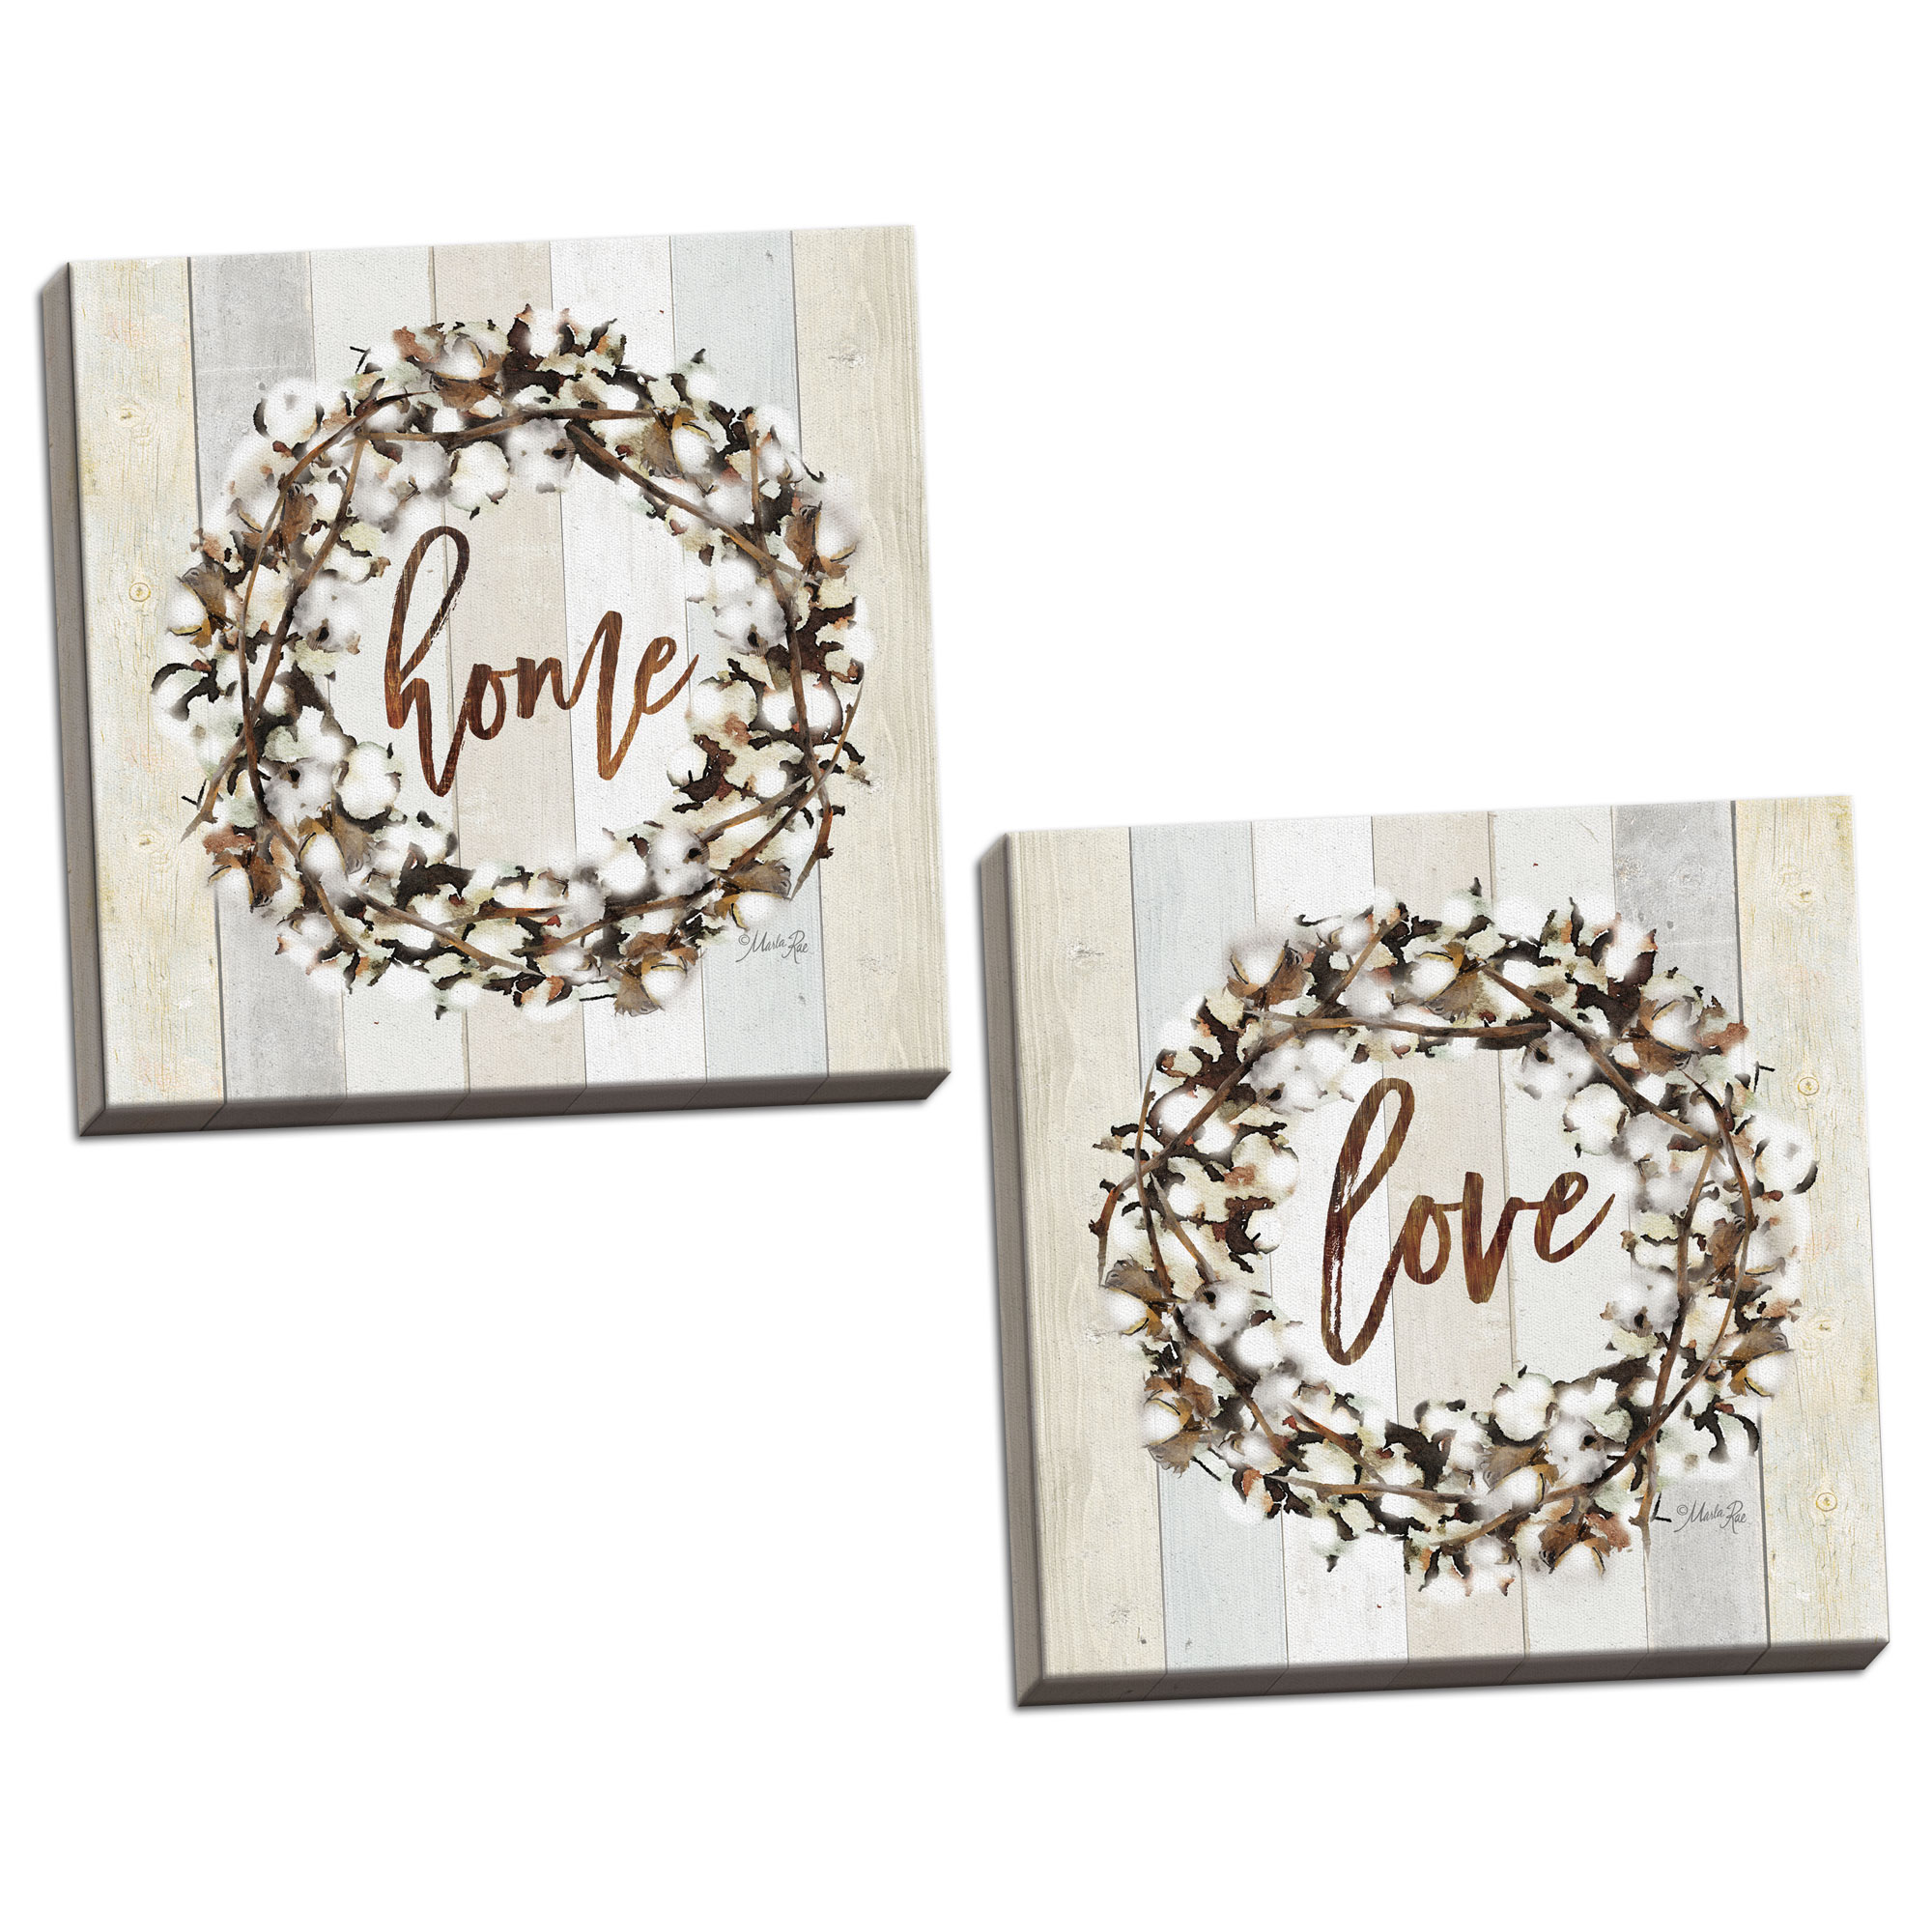 Gango Home Decor Country-Rustic Love Cotton Wreath & Home Cotton Wreath by Marla Rae (Ready to Hang); Two 12x12in Hand-Stretched Canvases